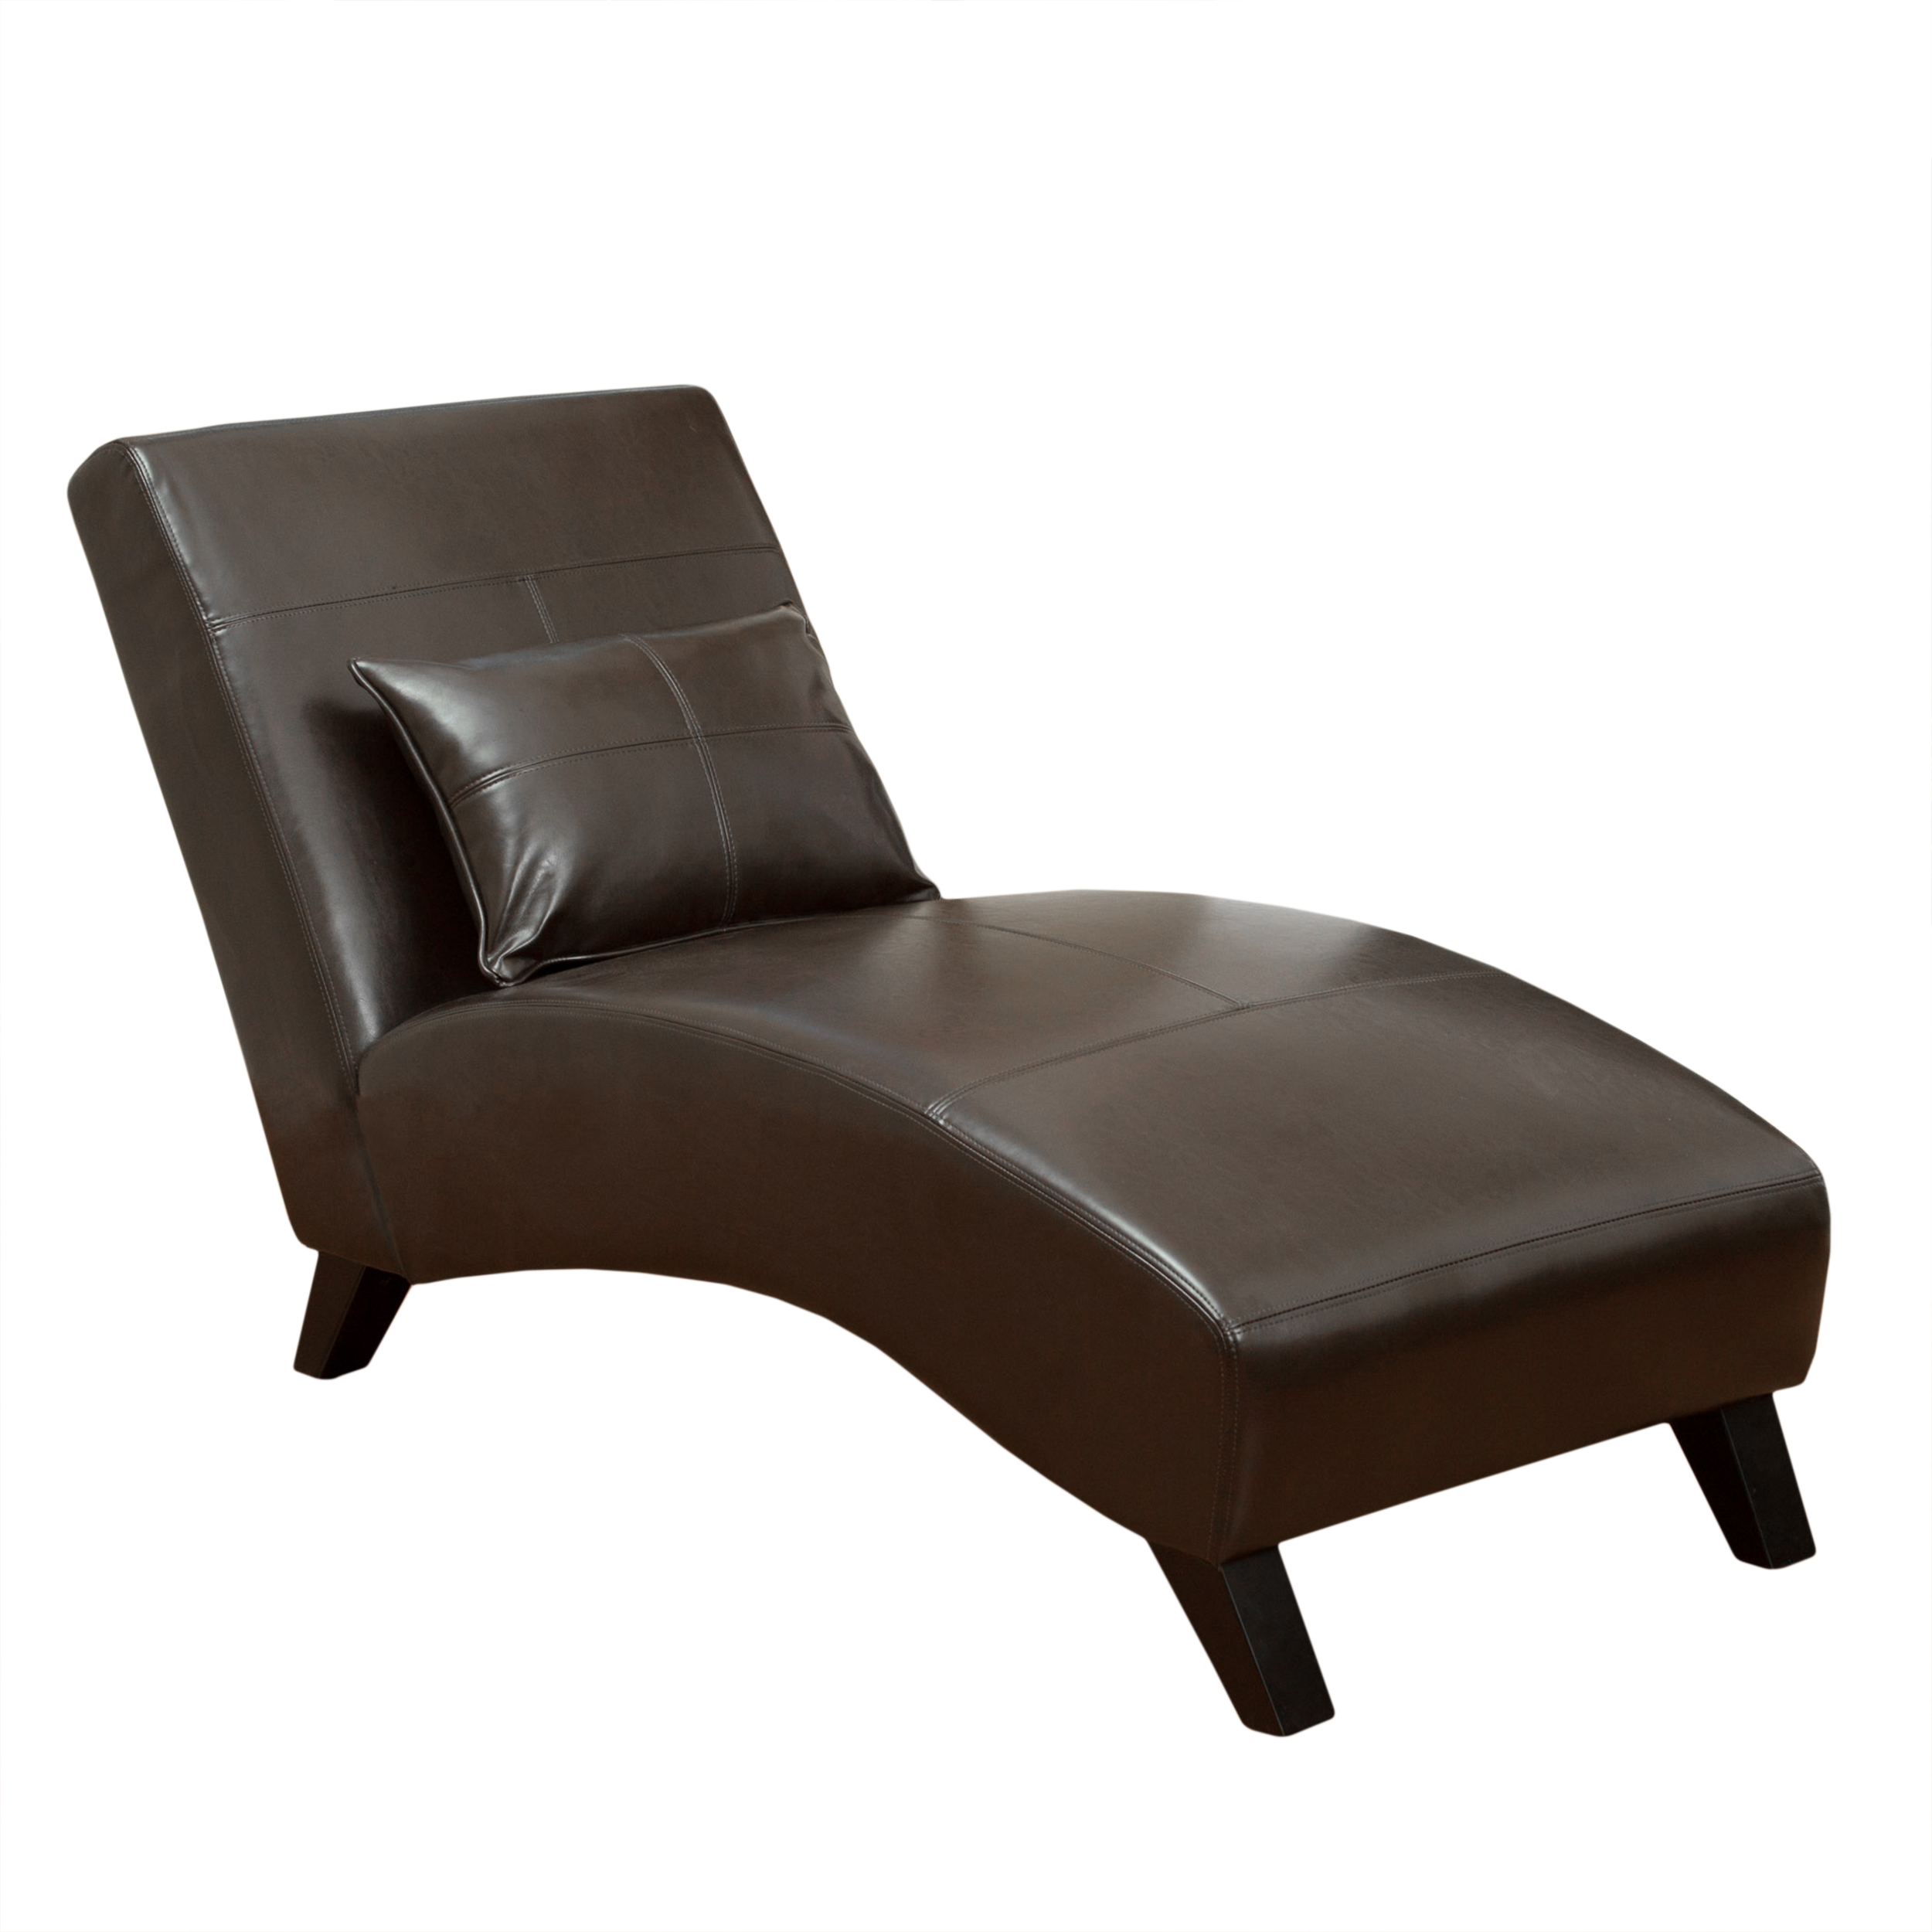 discount chaise lounge lawrence leather sofa chair ottoman bobs discount furniture bobs. Black Bedroom Furniture Sets. Home Design Ideas